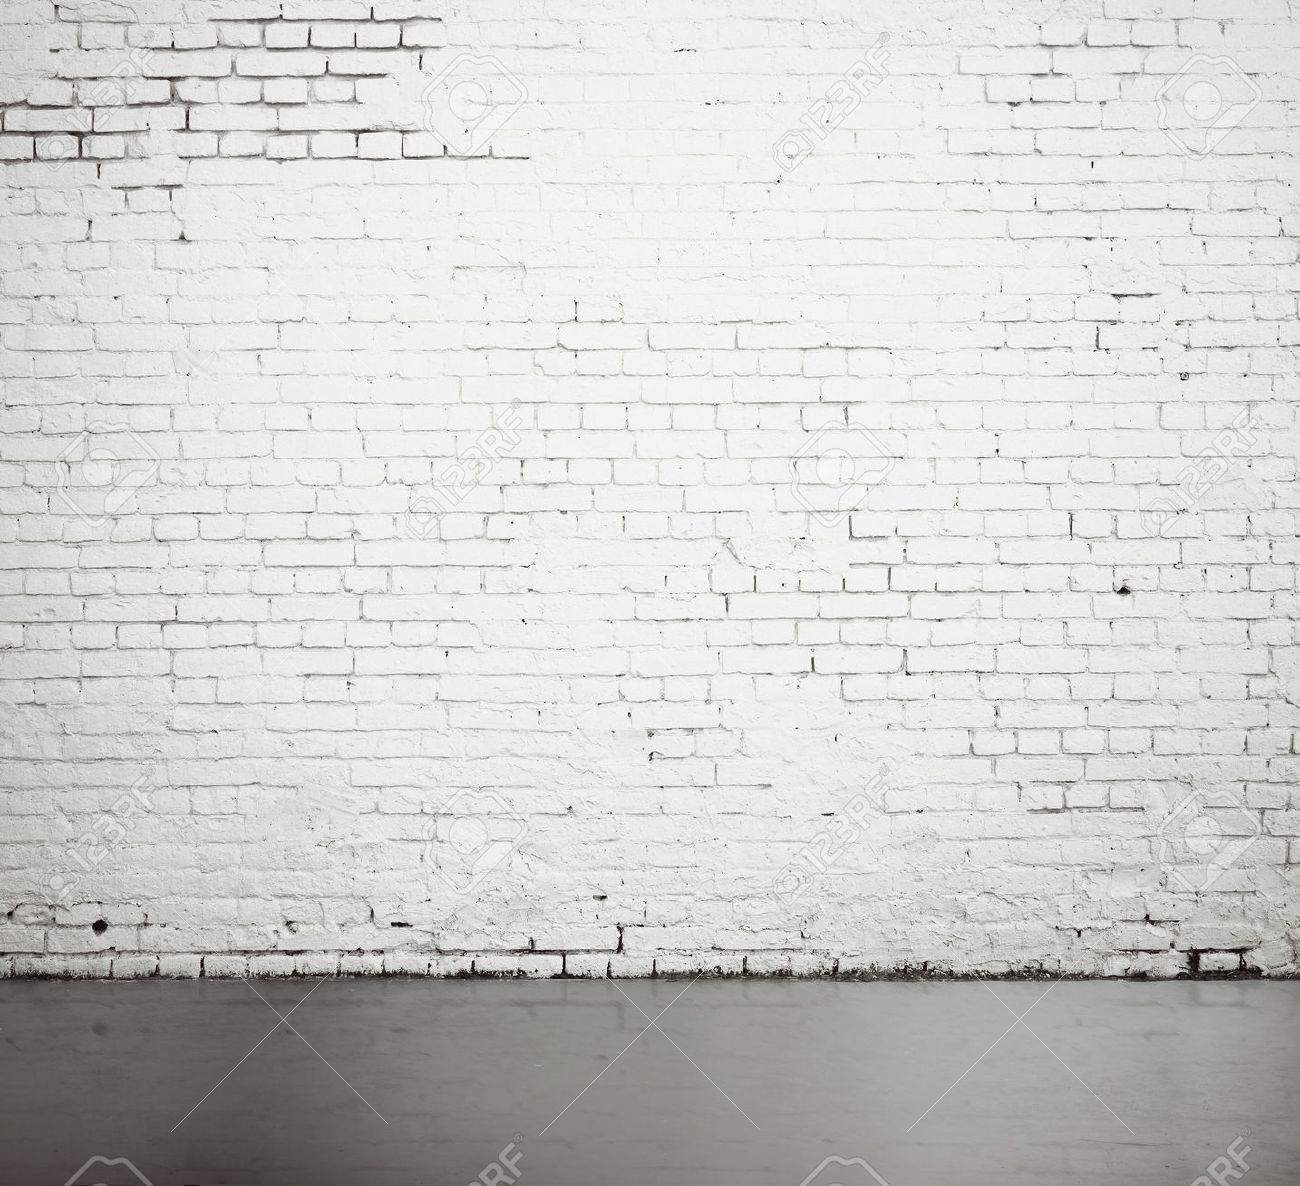 High Resolution White Brick Wall And Floor Brick Room Dark Wooden Floor White Brick Walls